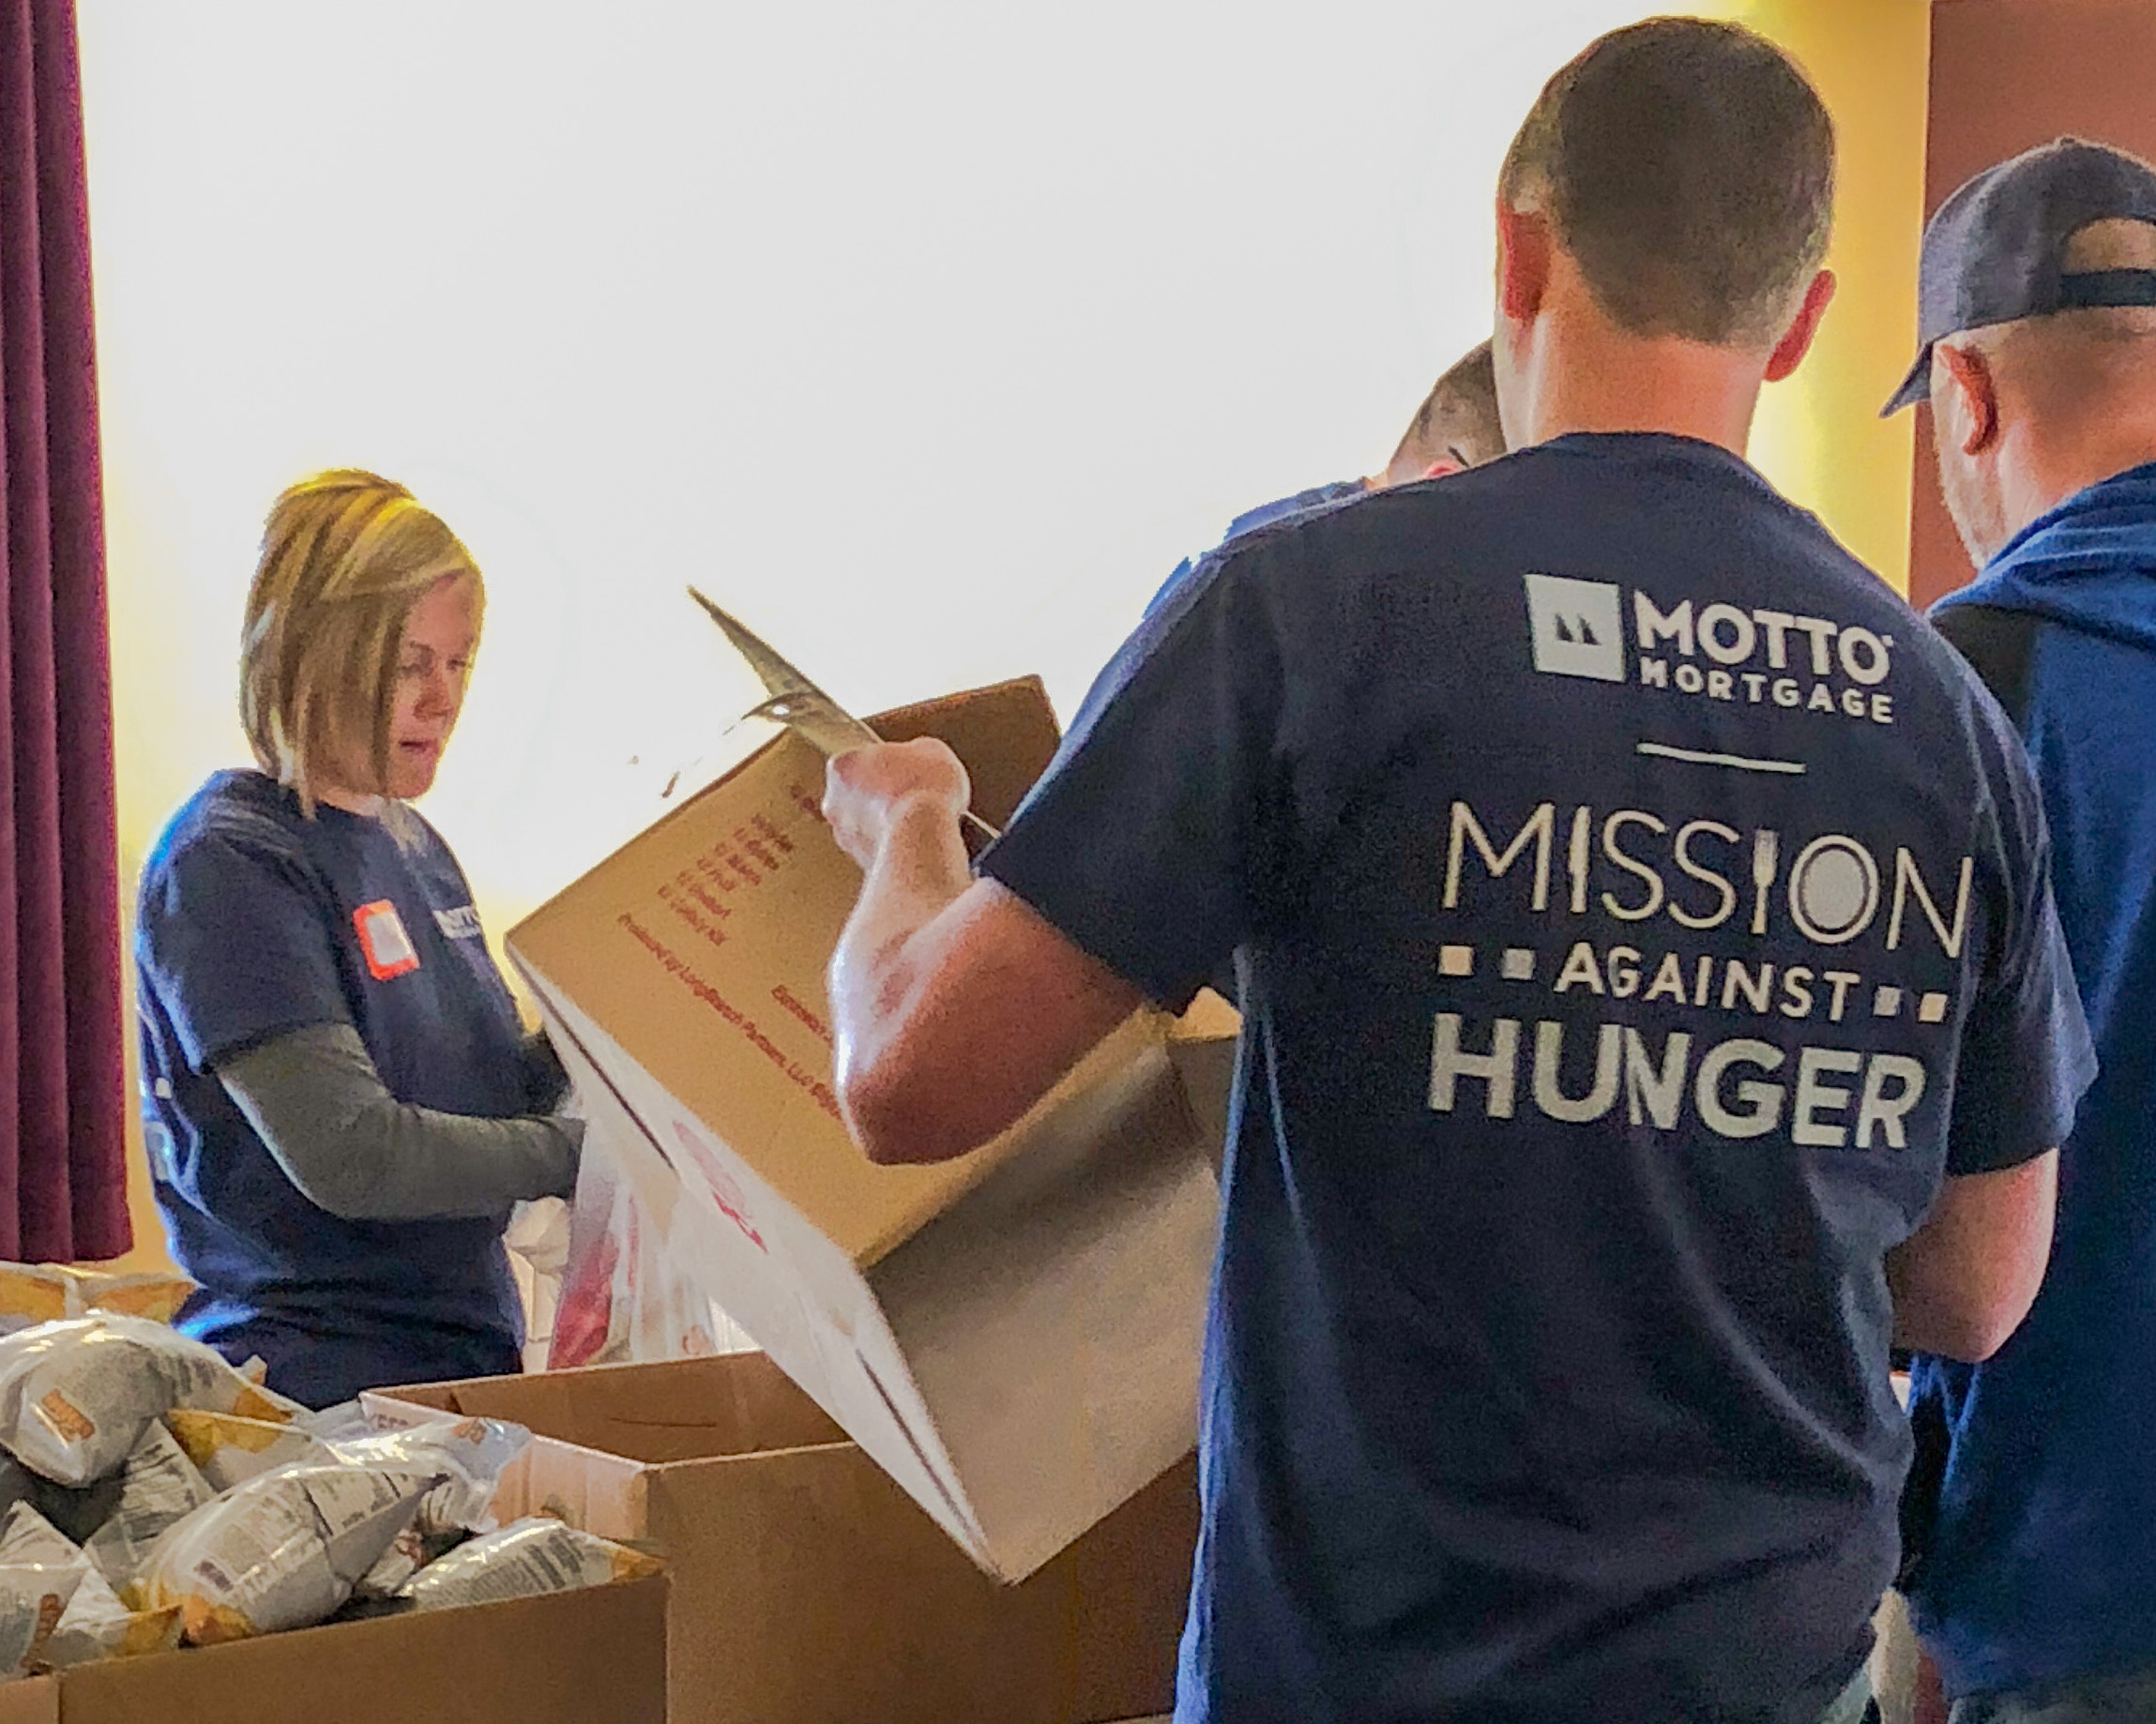 mission against hunger Mottto Mortgage team